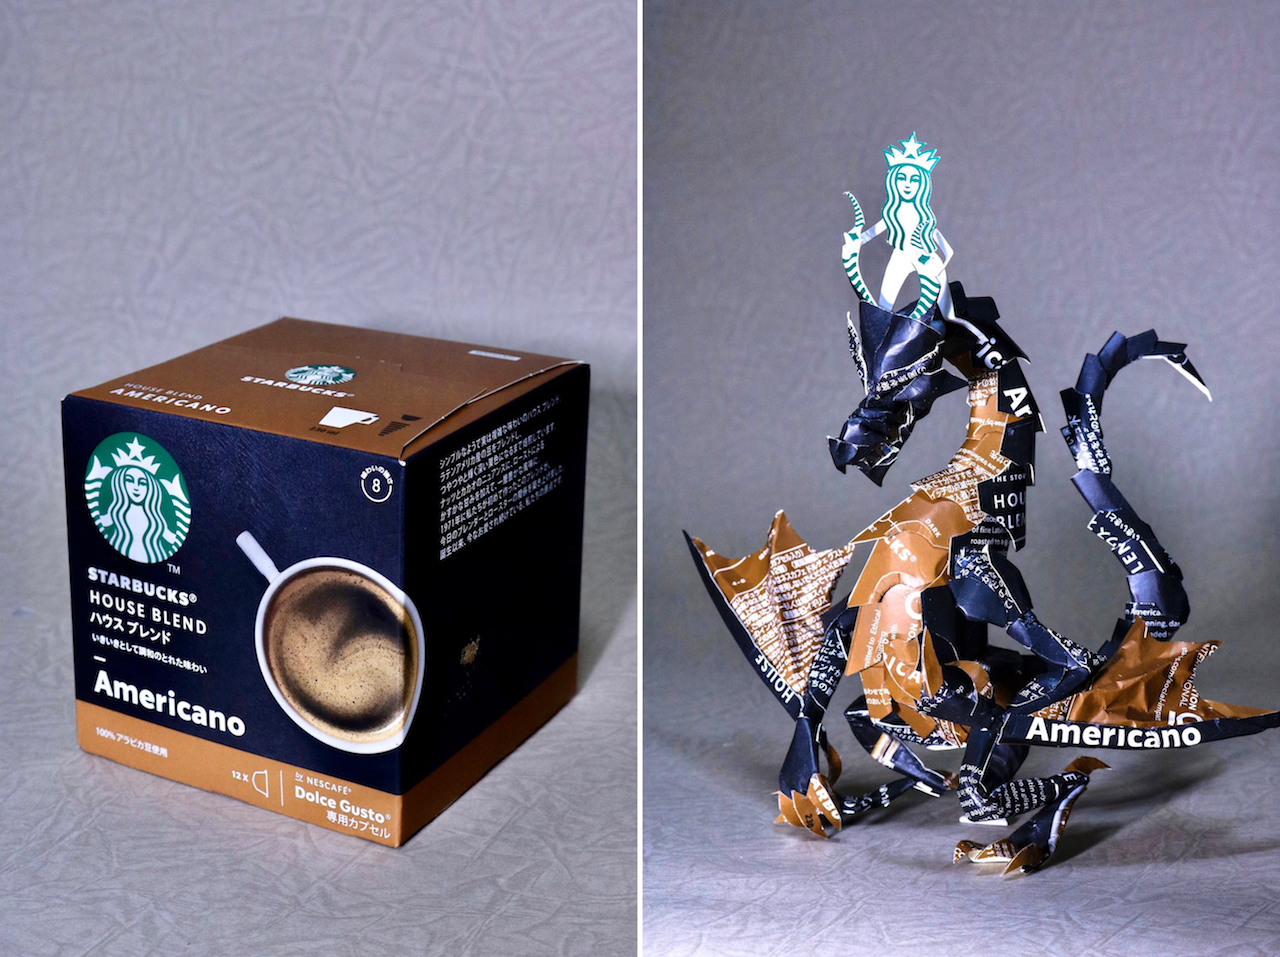 Product Packaging Turned Into Art - 13